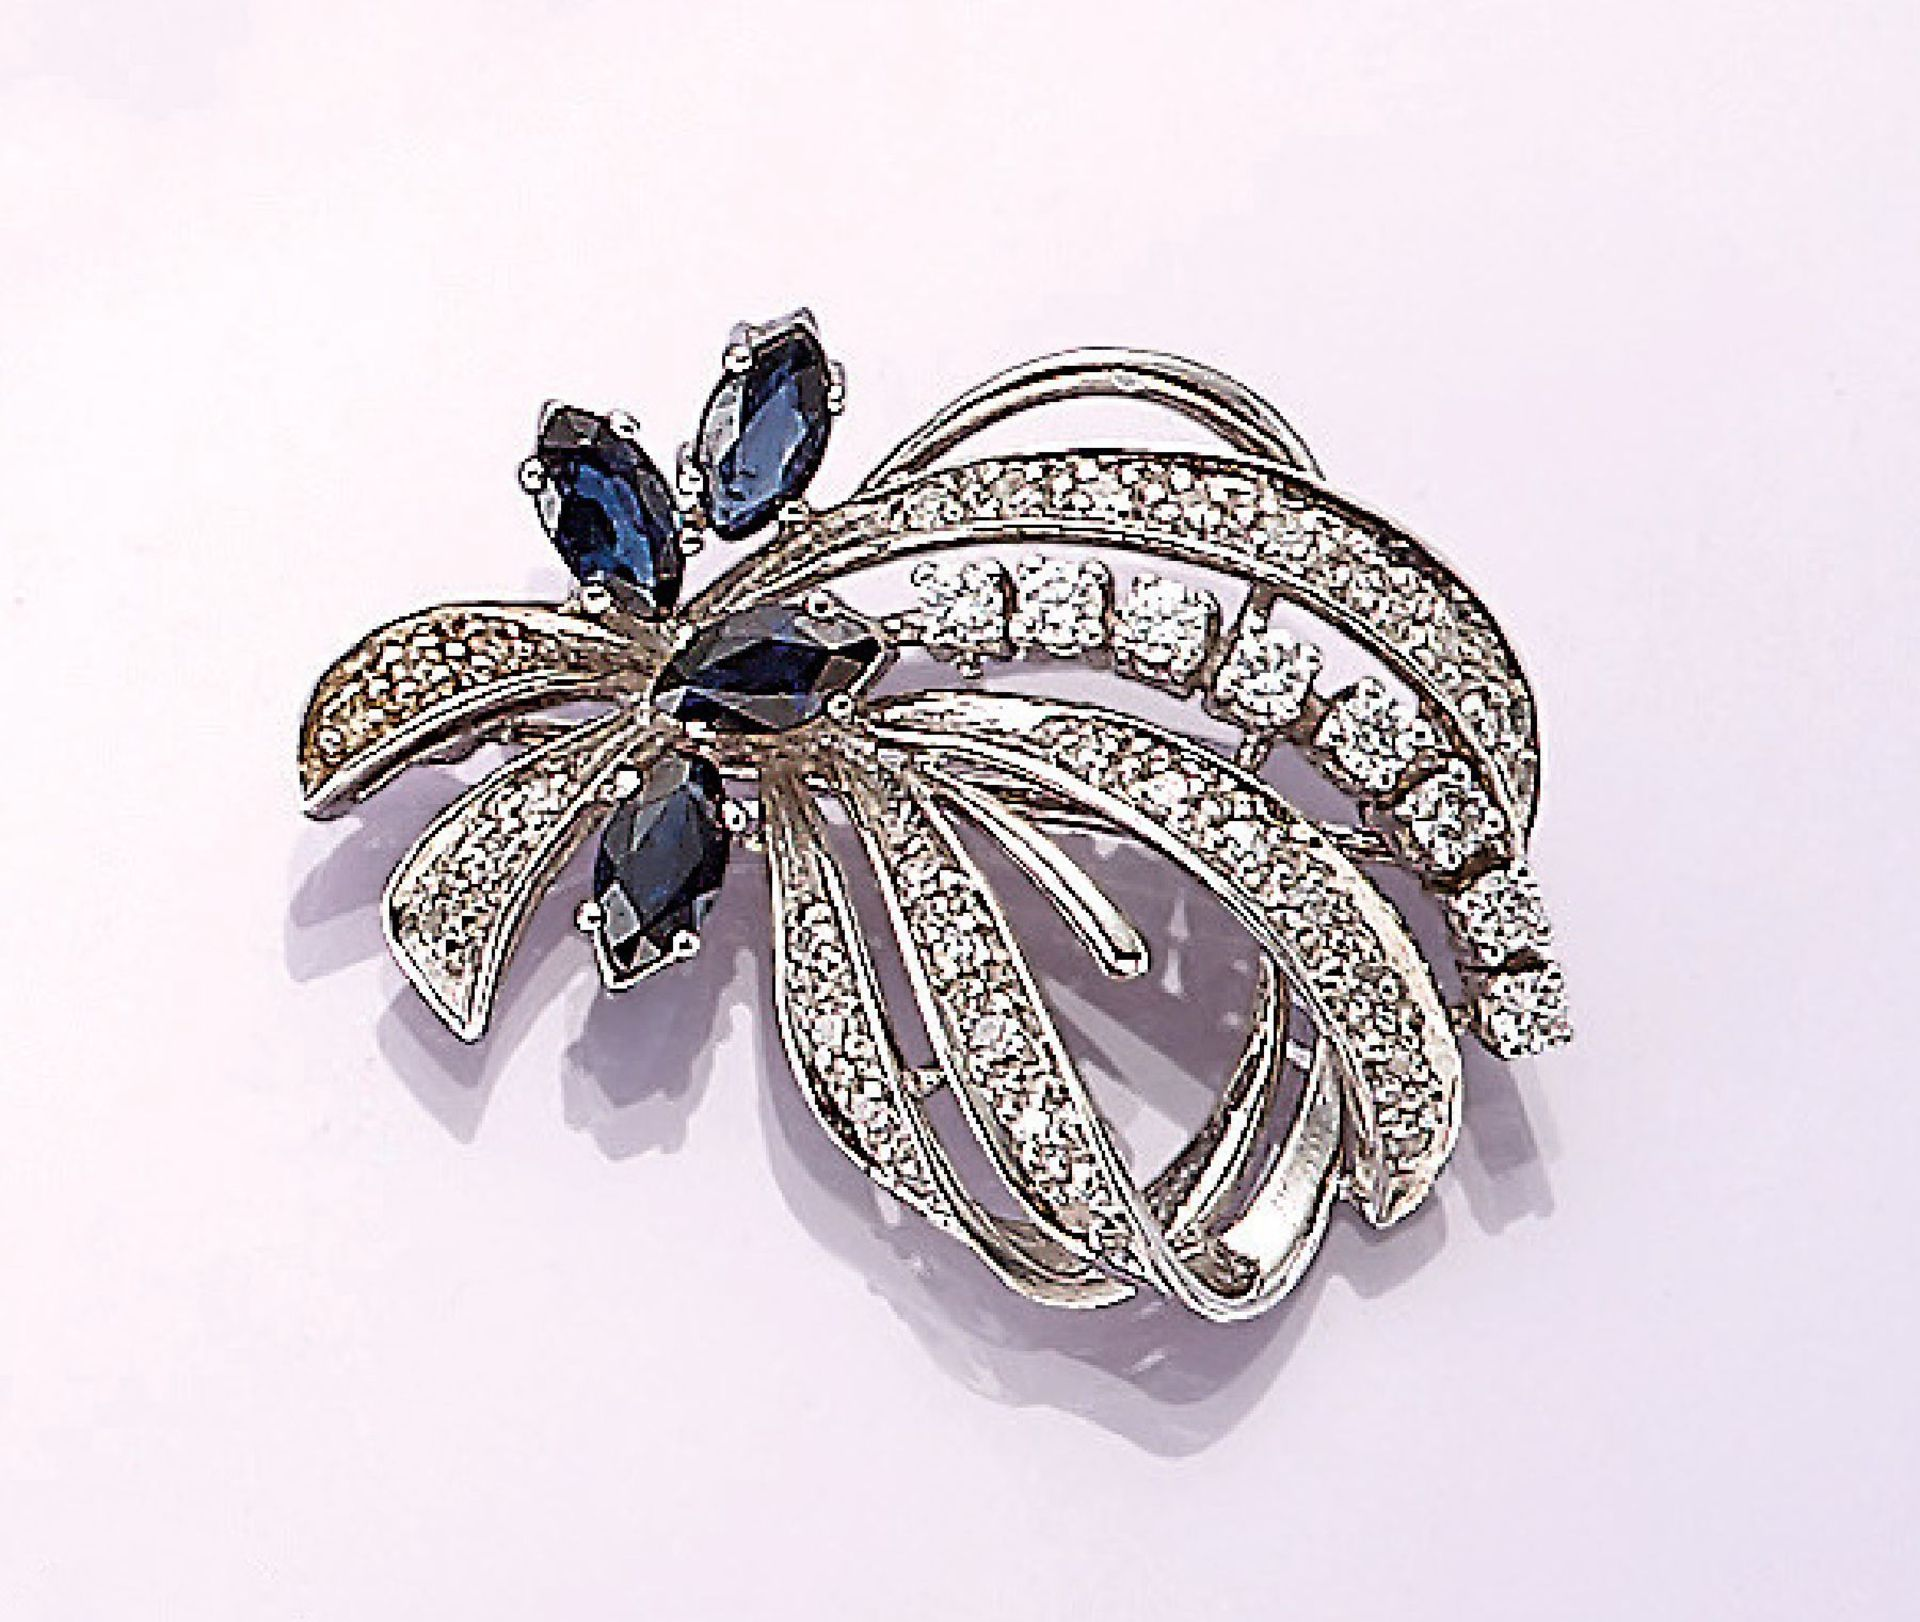 Los 31541 - 14 kt gold brooch with sapphires and diamonds , WG 585/000, 4 bevelled sapphire marquises total